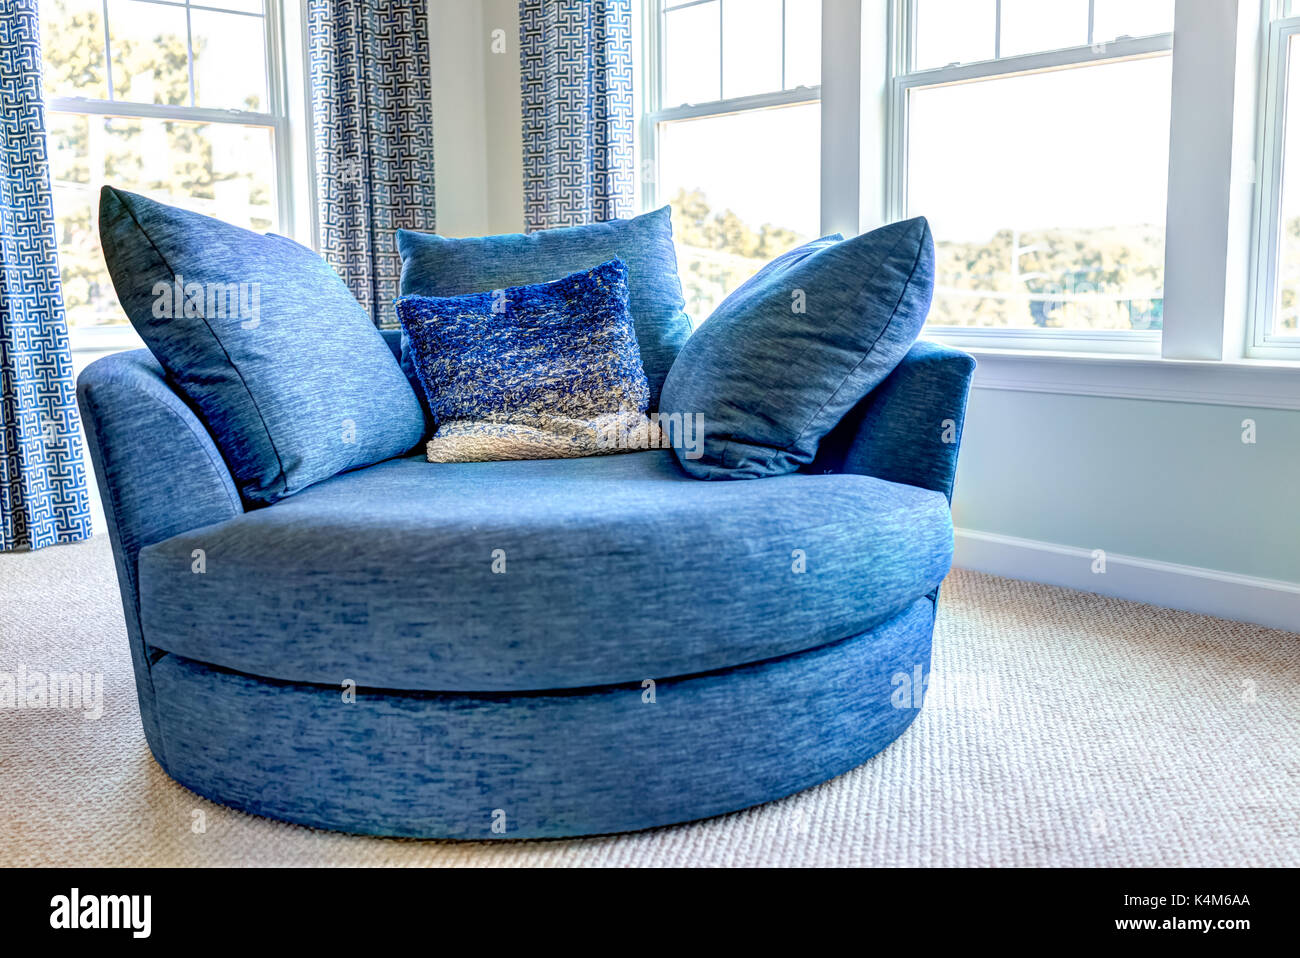 Closeup of new modern blue couch sofa by windows with natural light in home house or apartment